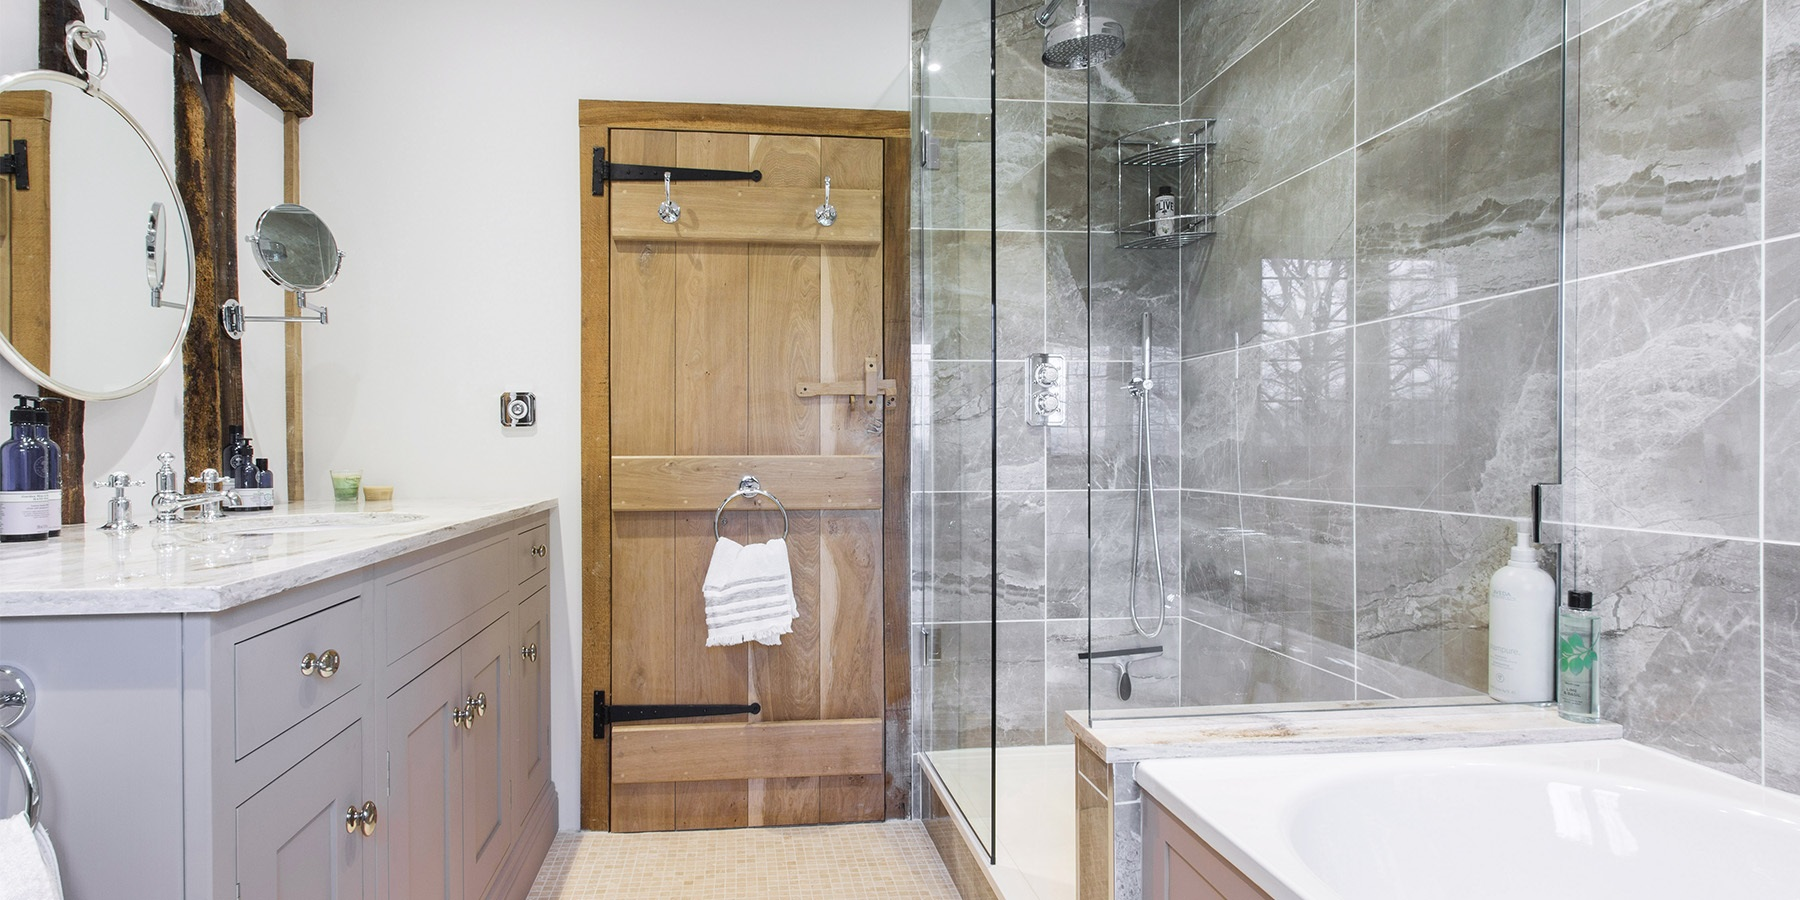 Handmade Fitted Bathroom Furniture - Burlanes bespoke family bathroom design with walk-in shower and fitted bathtub panelling.